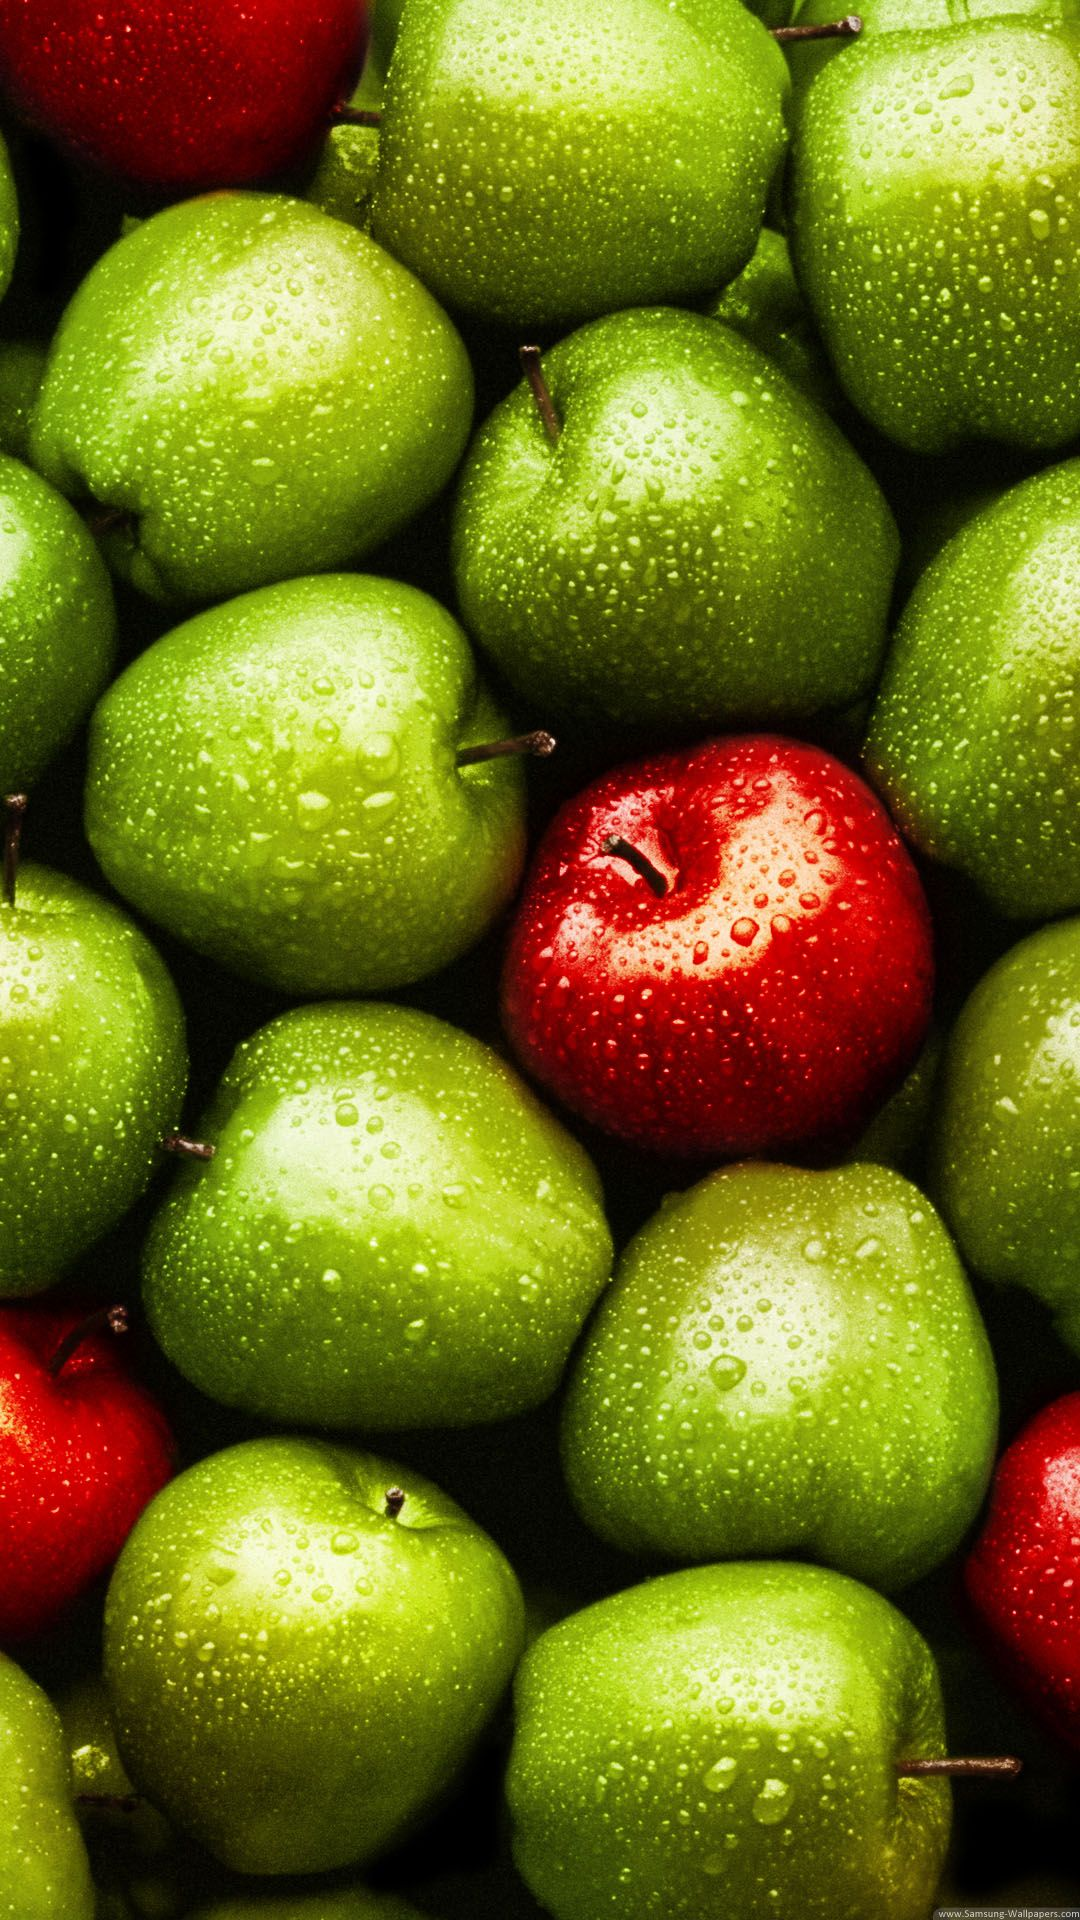 green apple wallpaper hd. download green red apples iphone 6 plus hd wallpaper apple hd